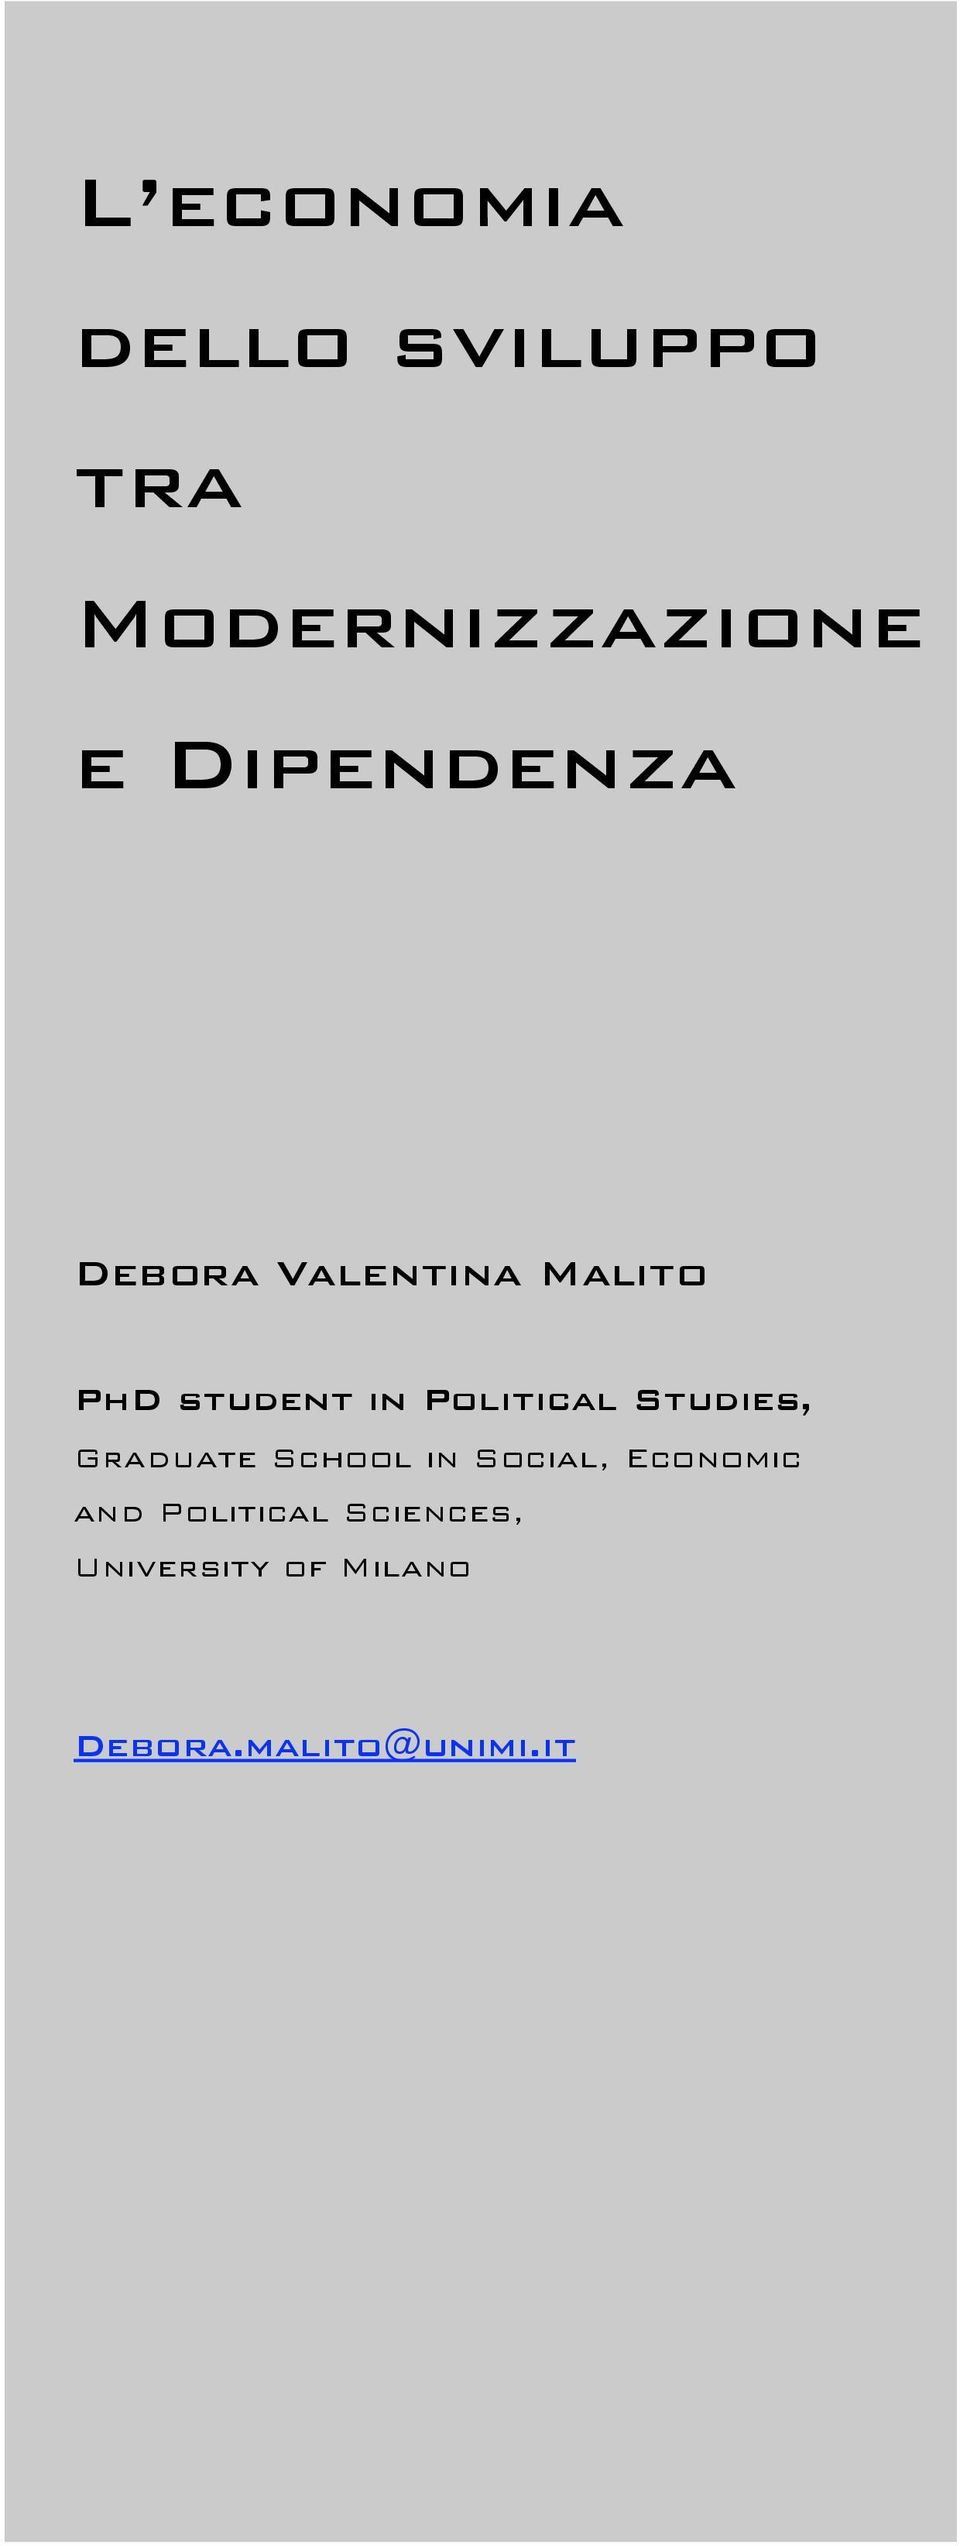 Political Studies, Graduate School in Social, Economic